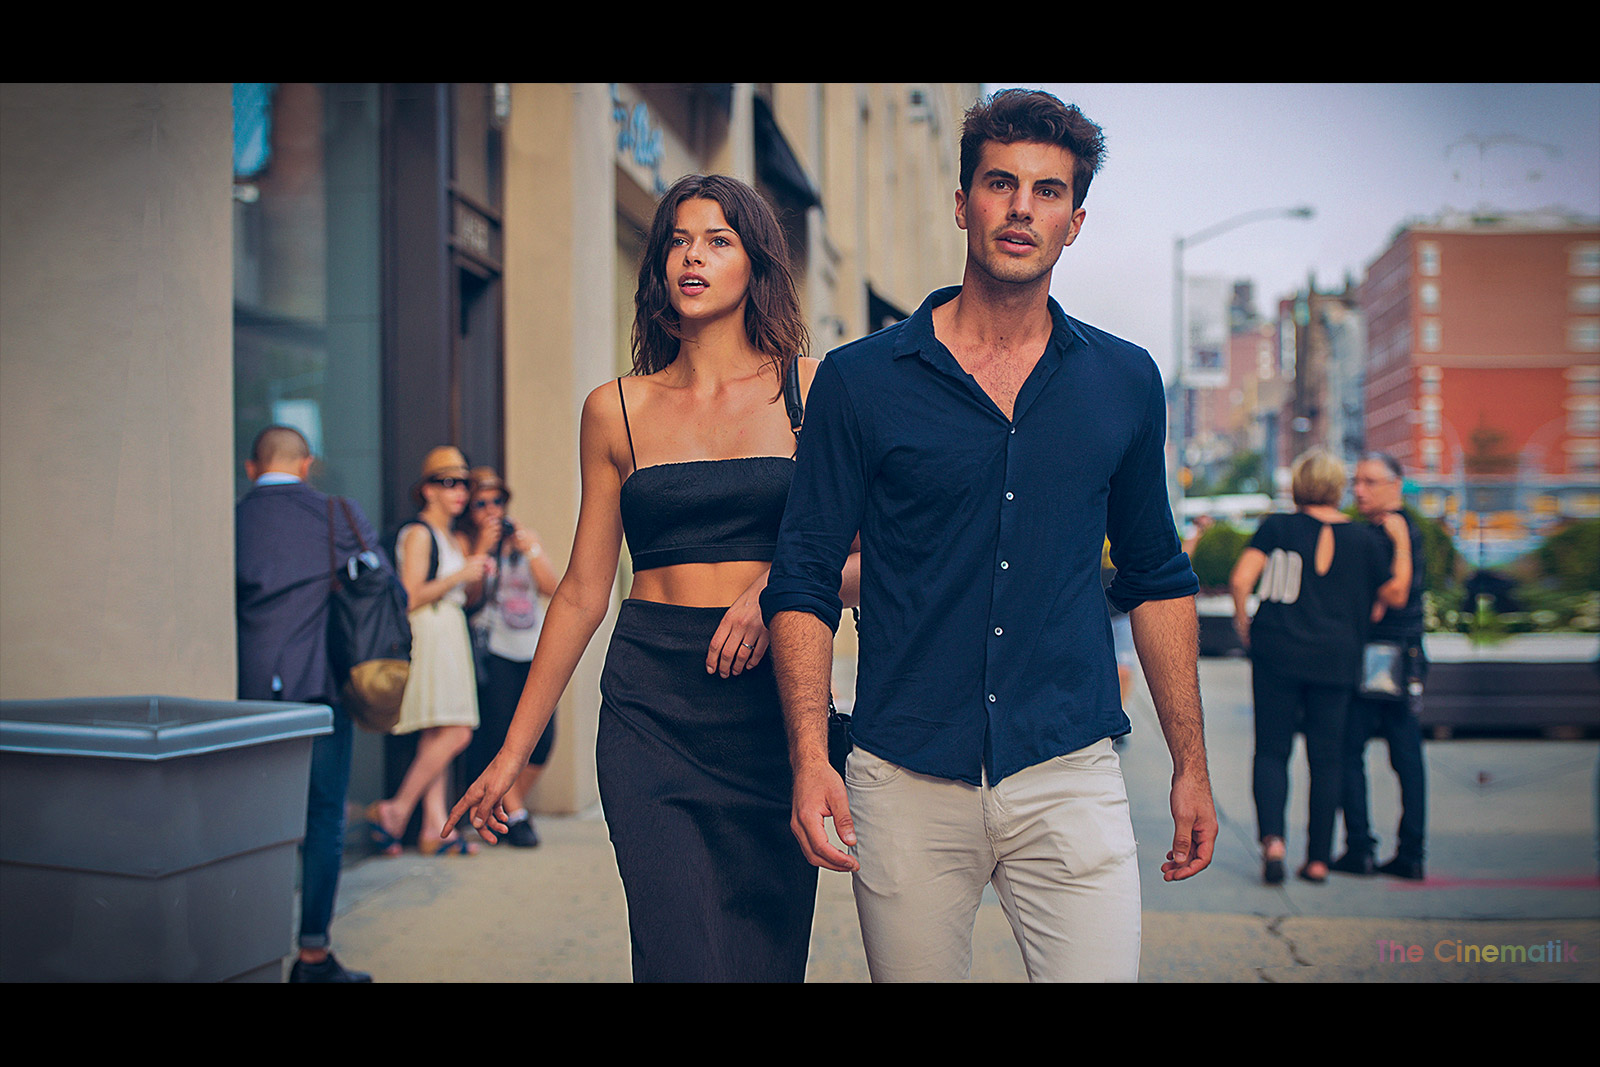 Beautiful model couple cinematic photograph at New York Fashion Week by Kamal Lahmadi